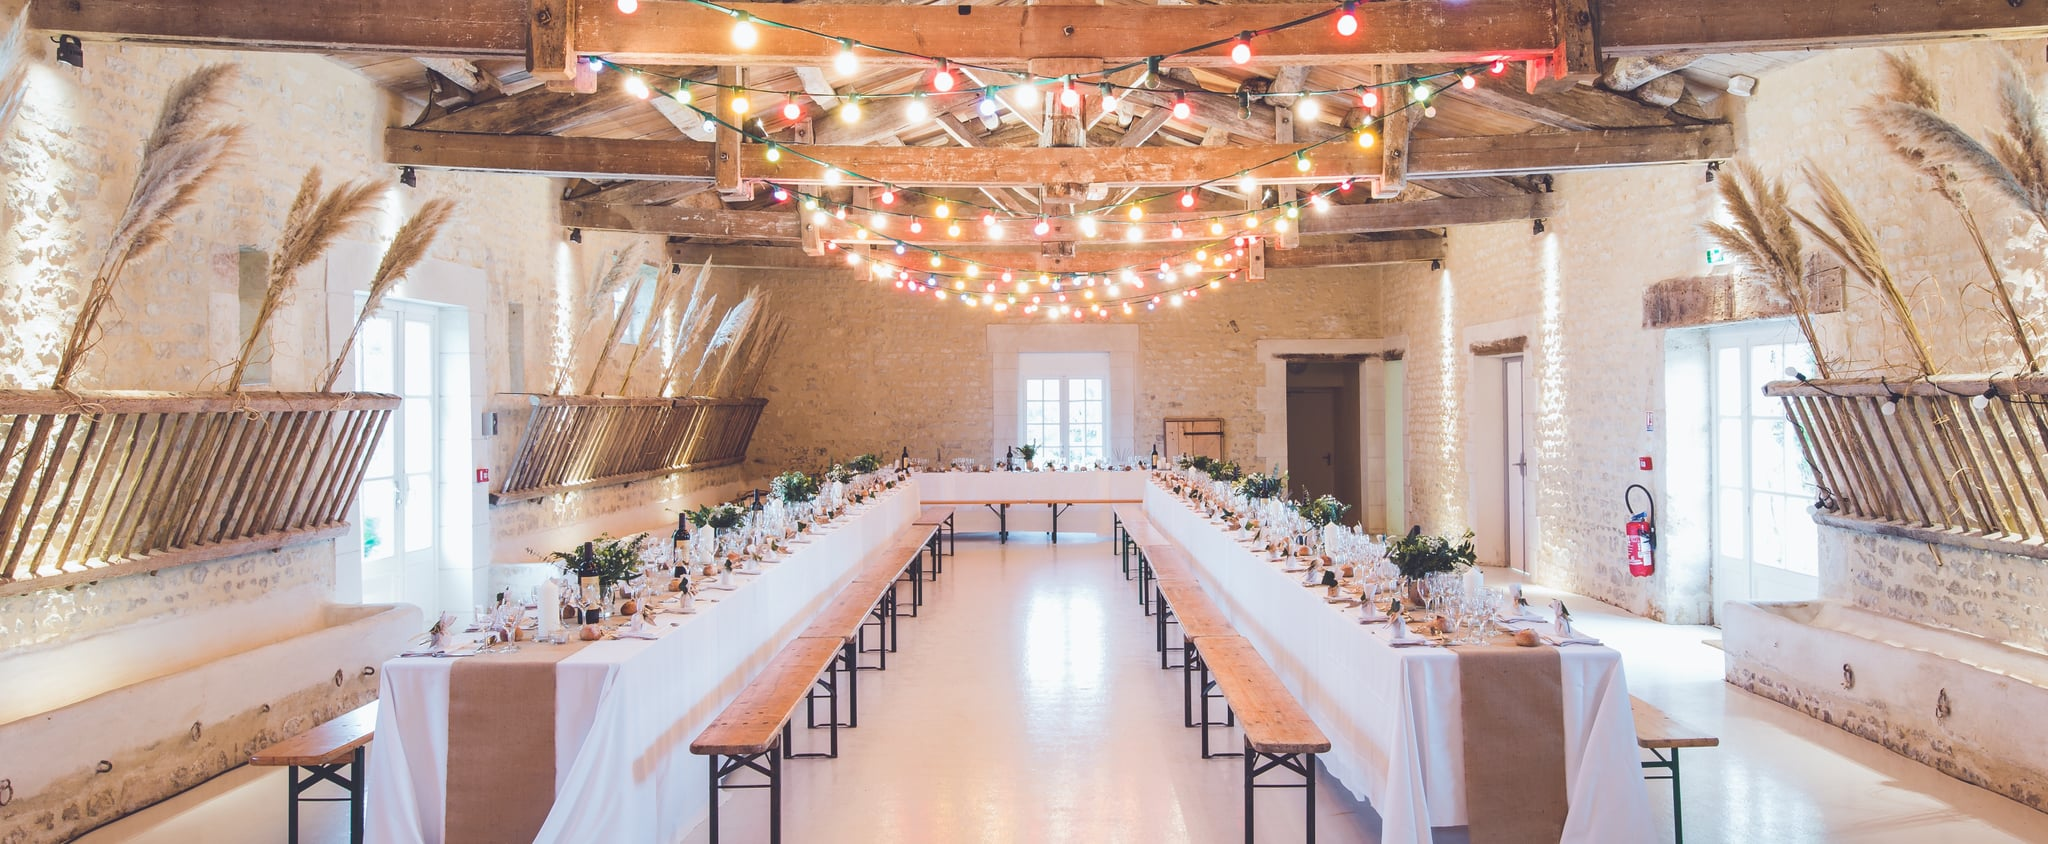 Engaged? This Is the Best Time to Book Your Wedding Venue